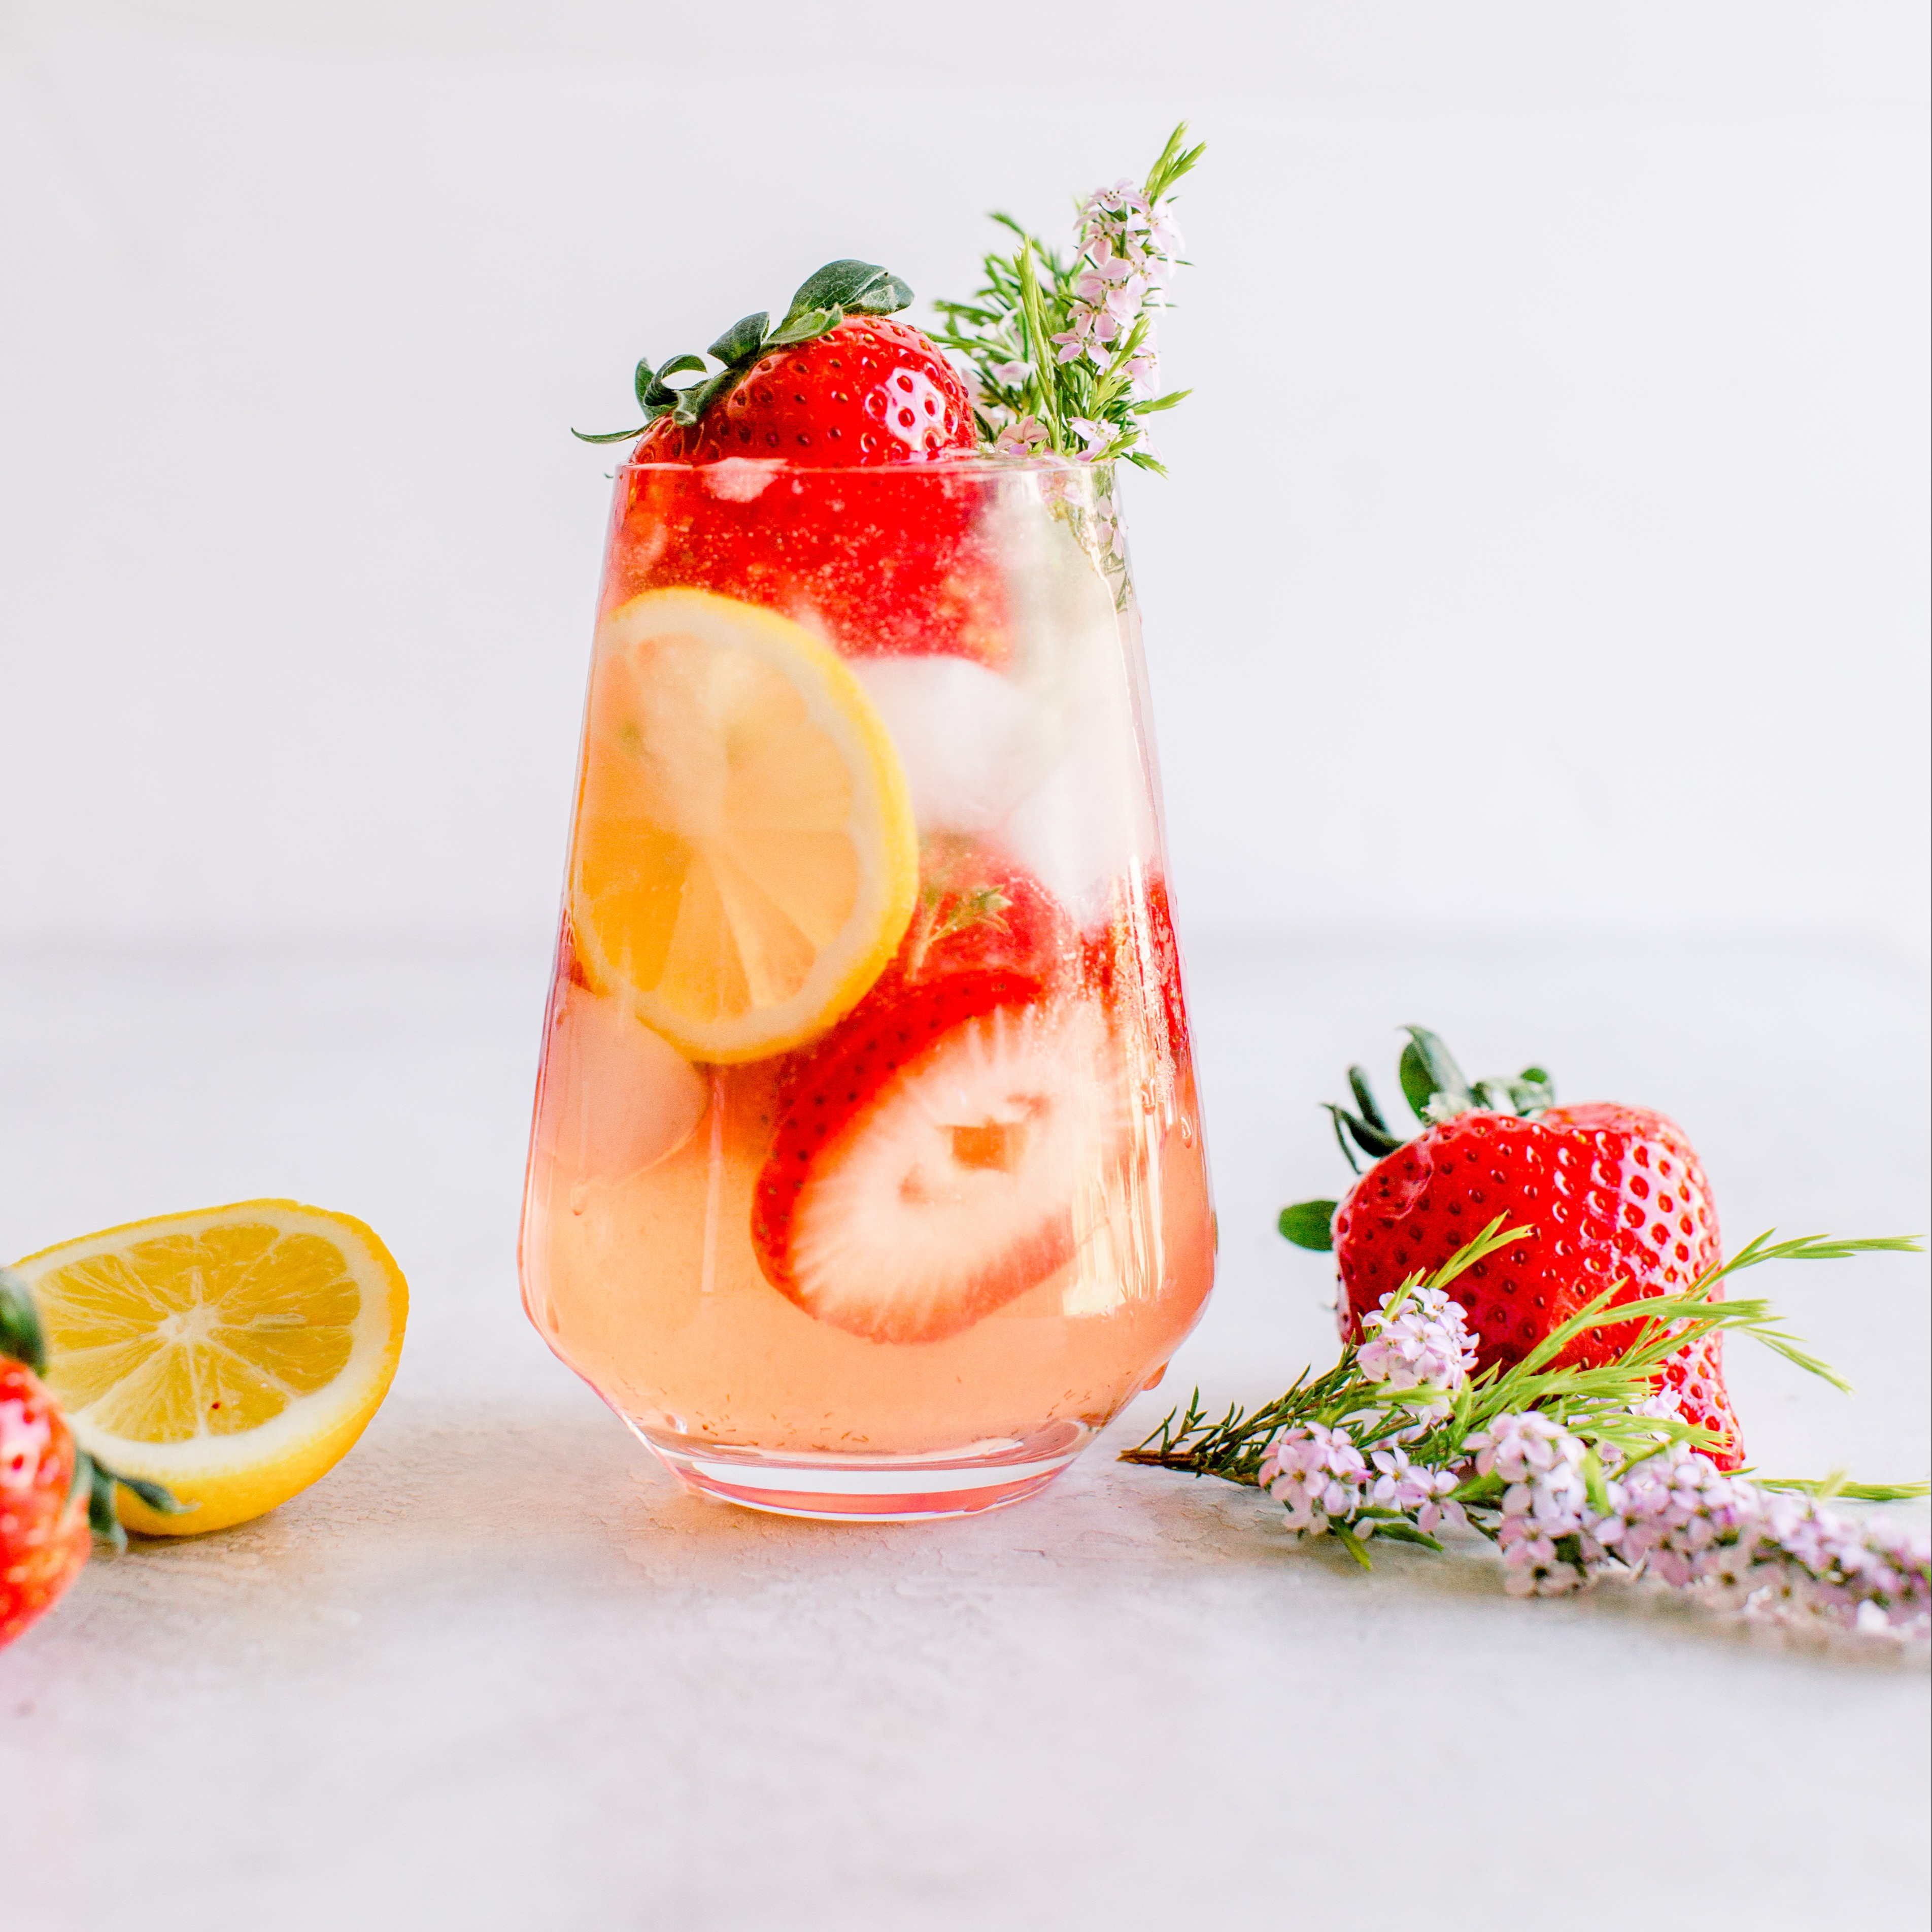 Try These Popular Summer Berry Flavor Combos